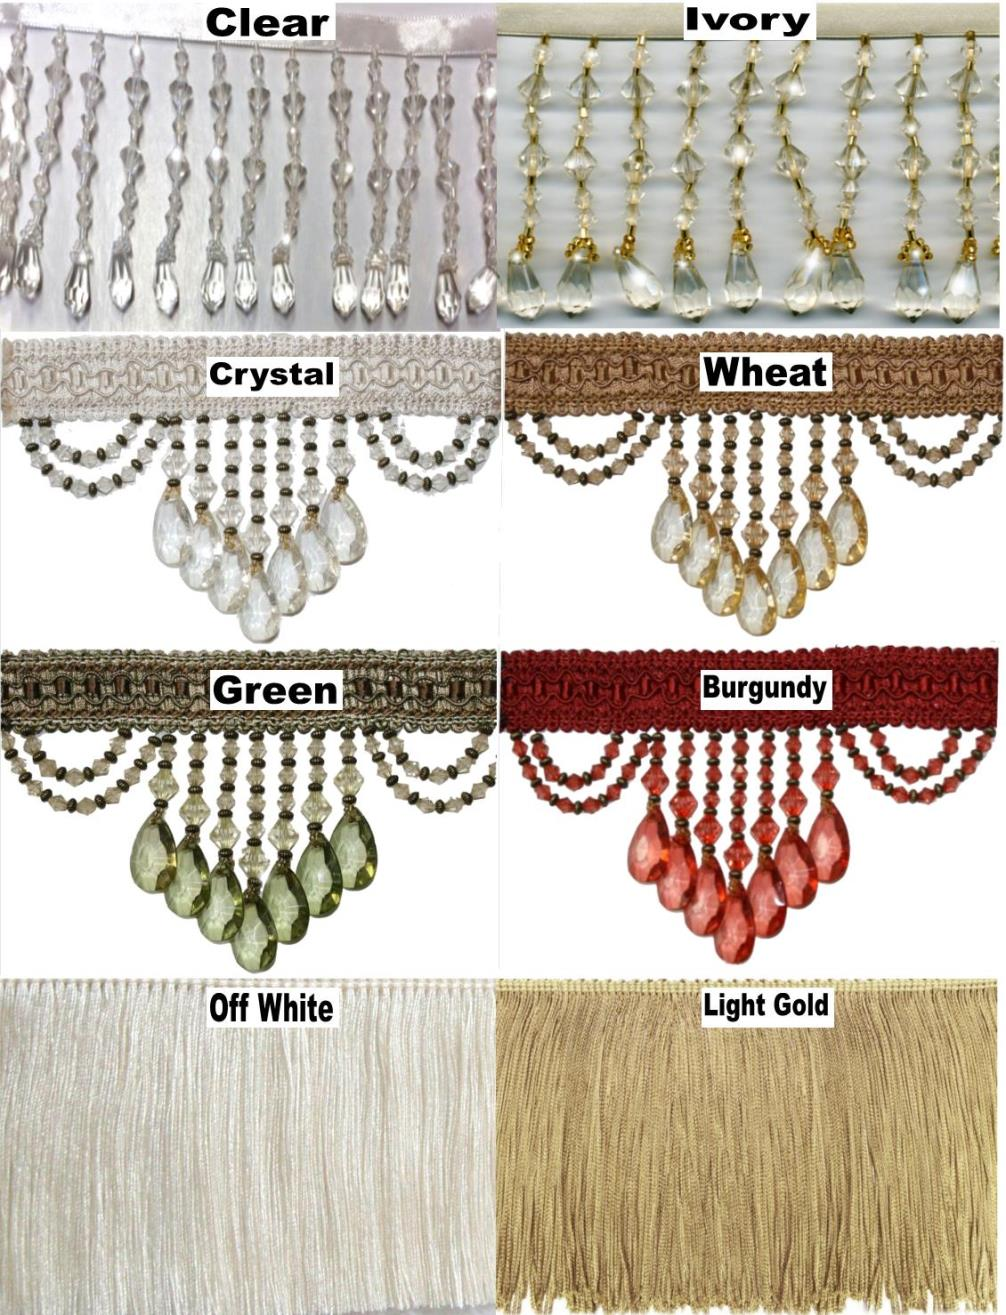 Beads & Fringe Options